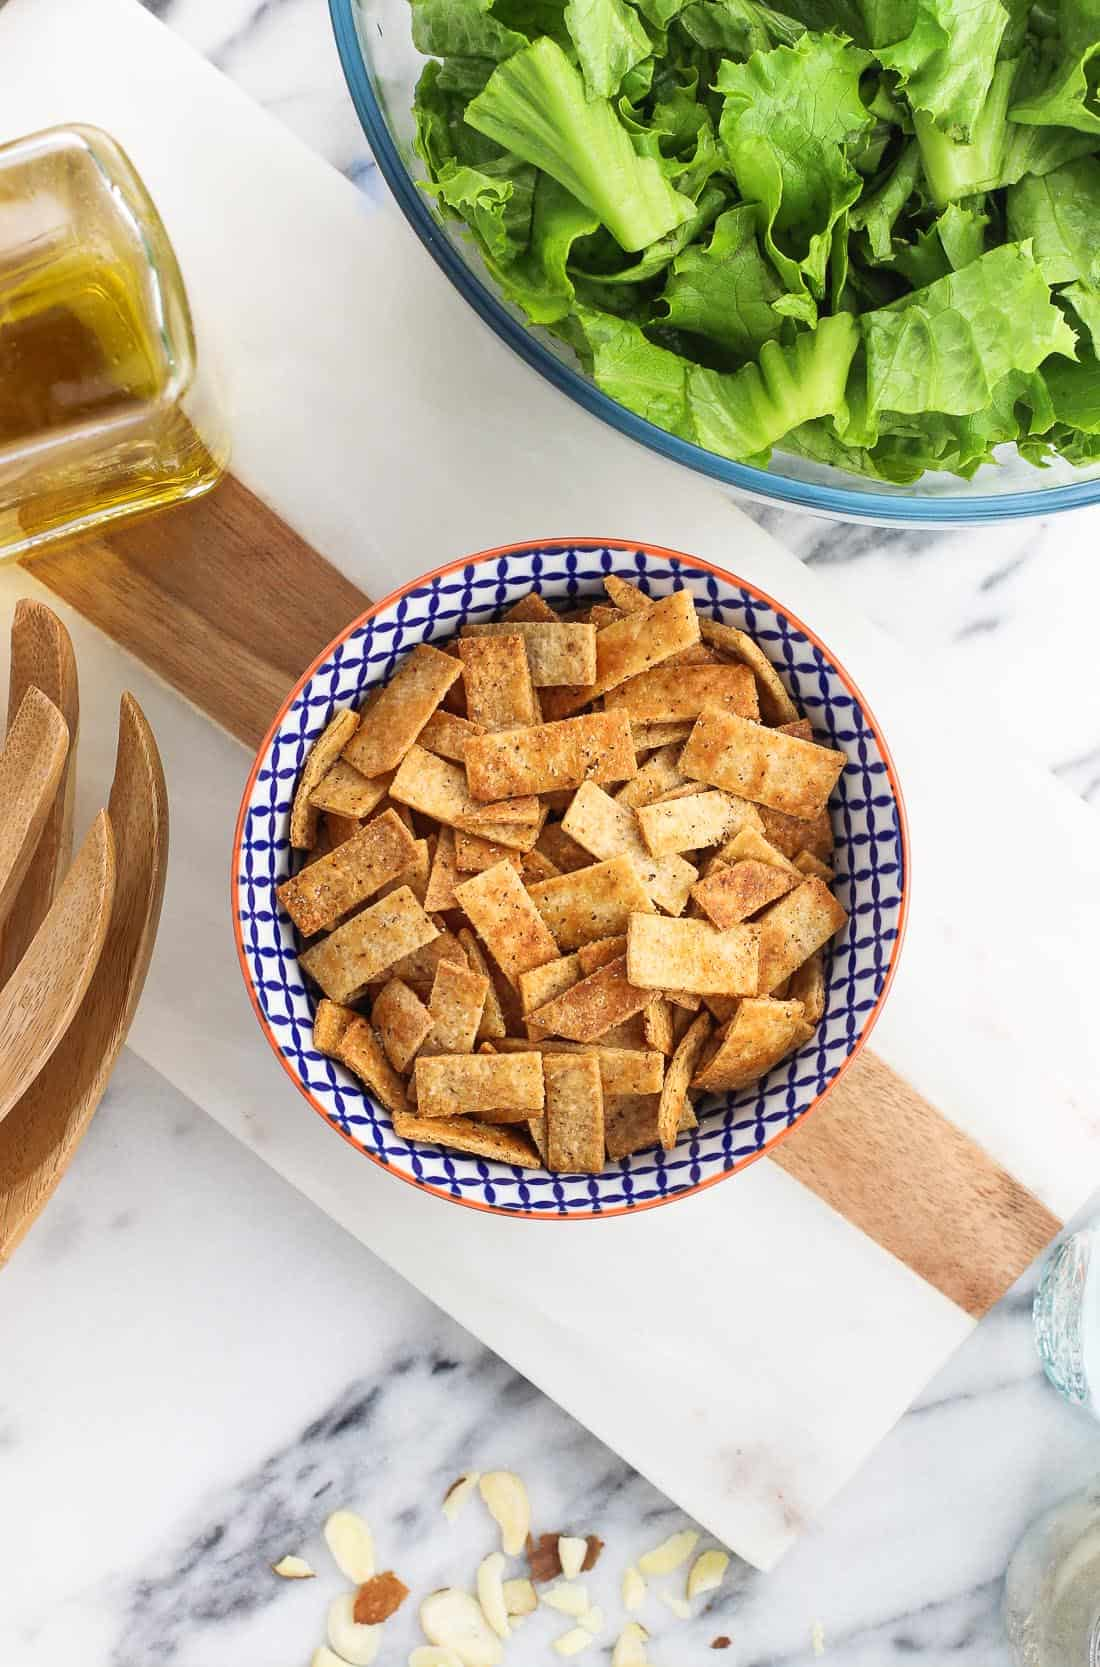 A bowl of baked tortilla strips next to a bowl fo lettuce and salad tongs.